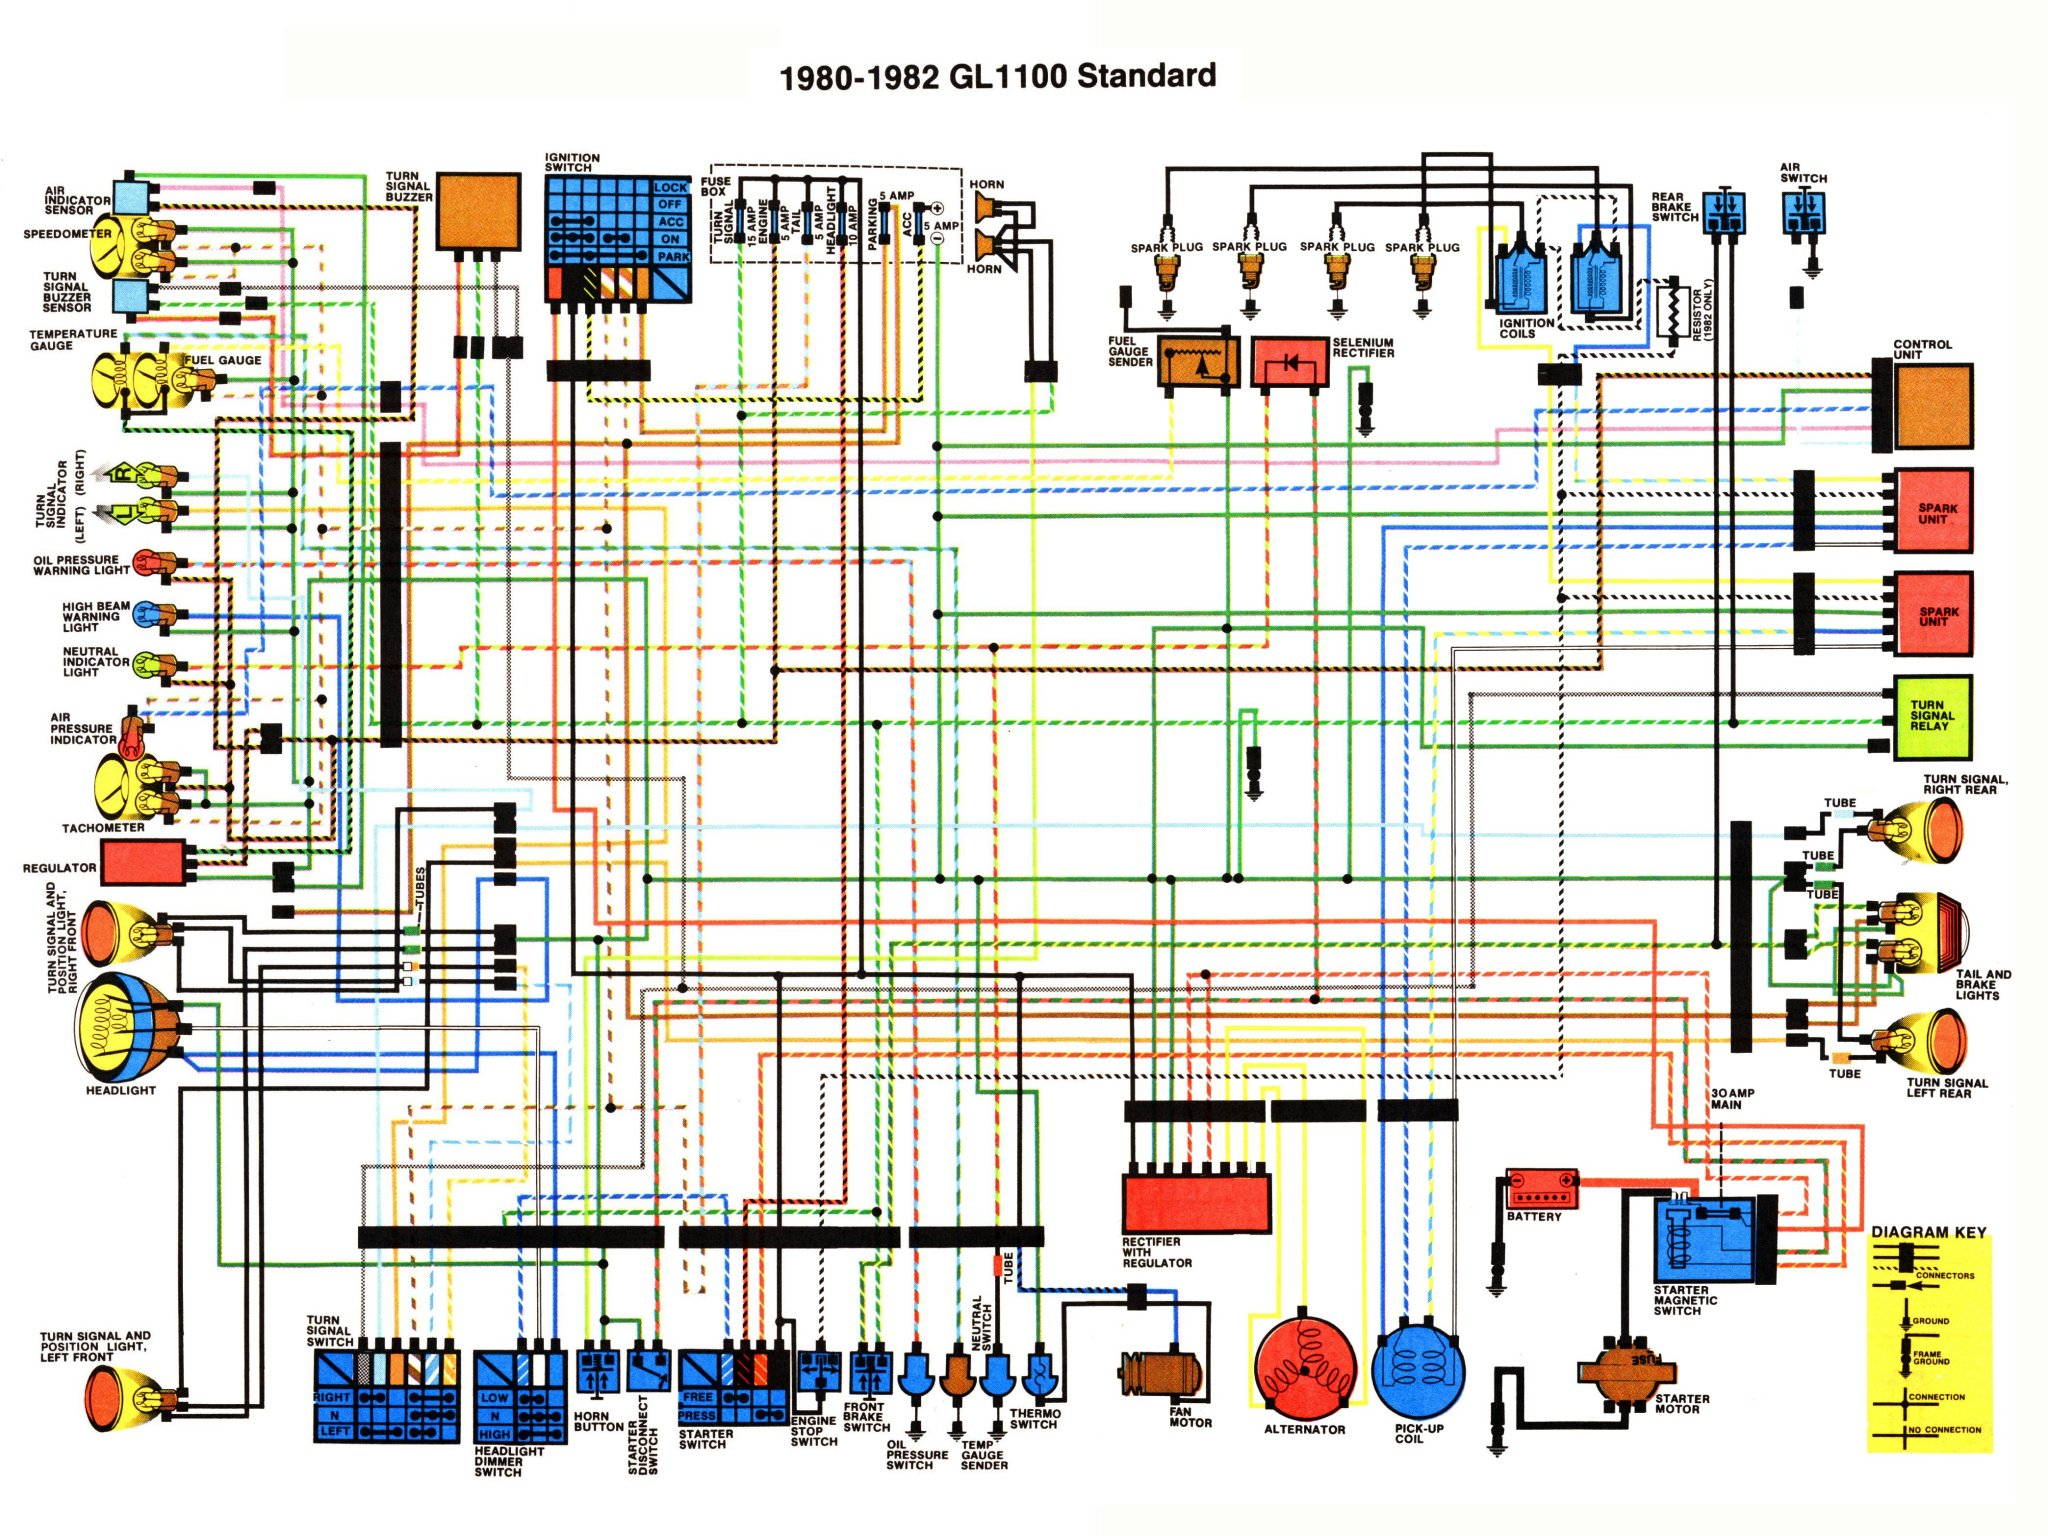 gl1000 wiring diagram wiring diagrams rh 19 treatchildtrauma de